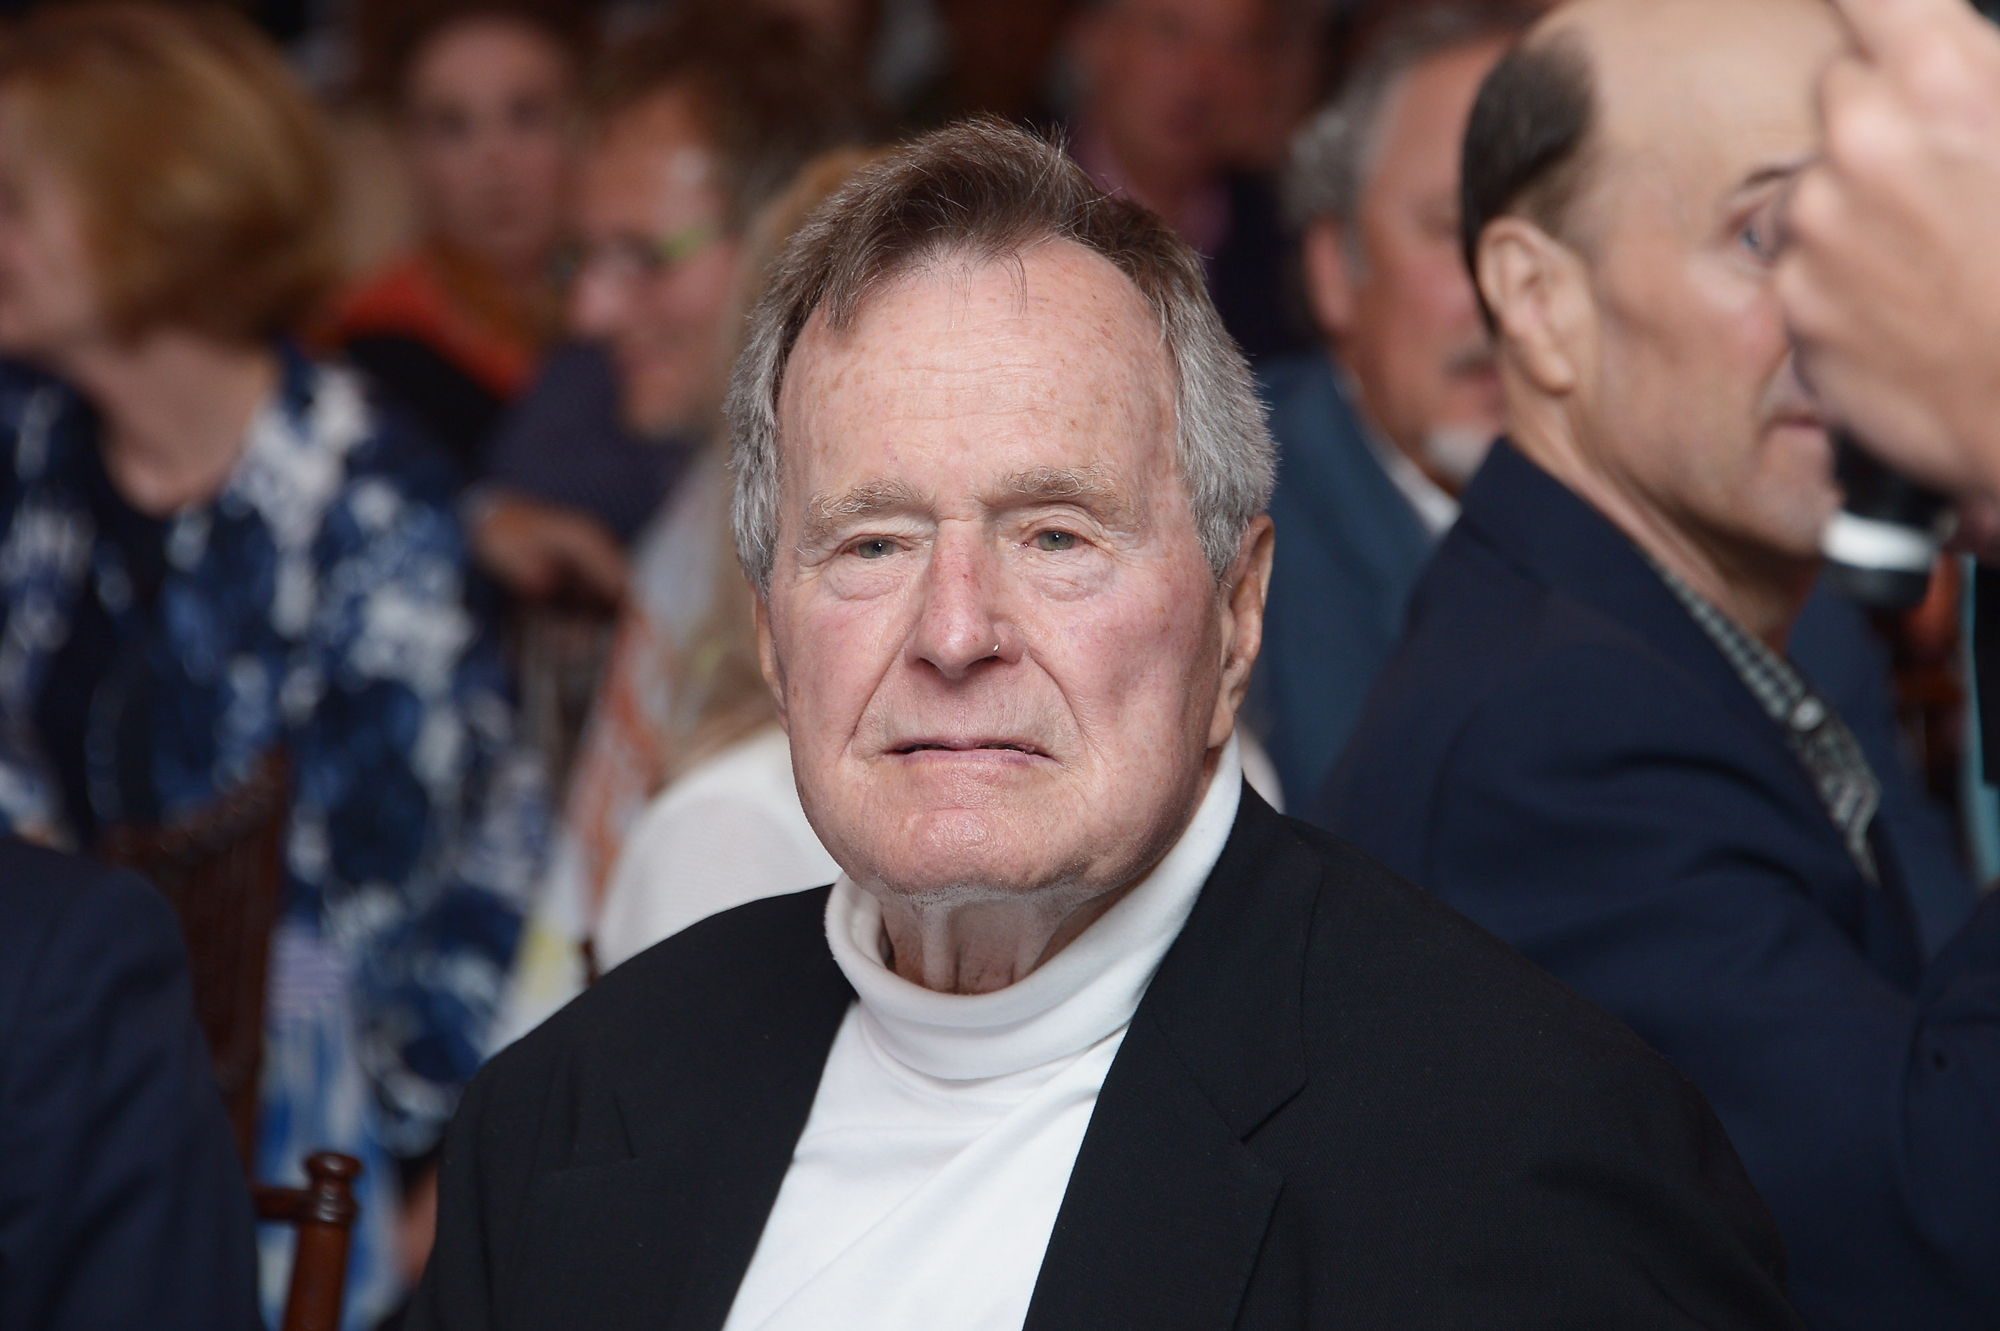 George H. W. Bush Issues a Second Apology After Accusations of Groping Another Actress